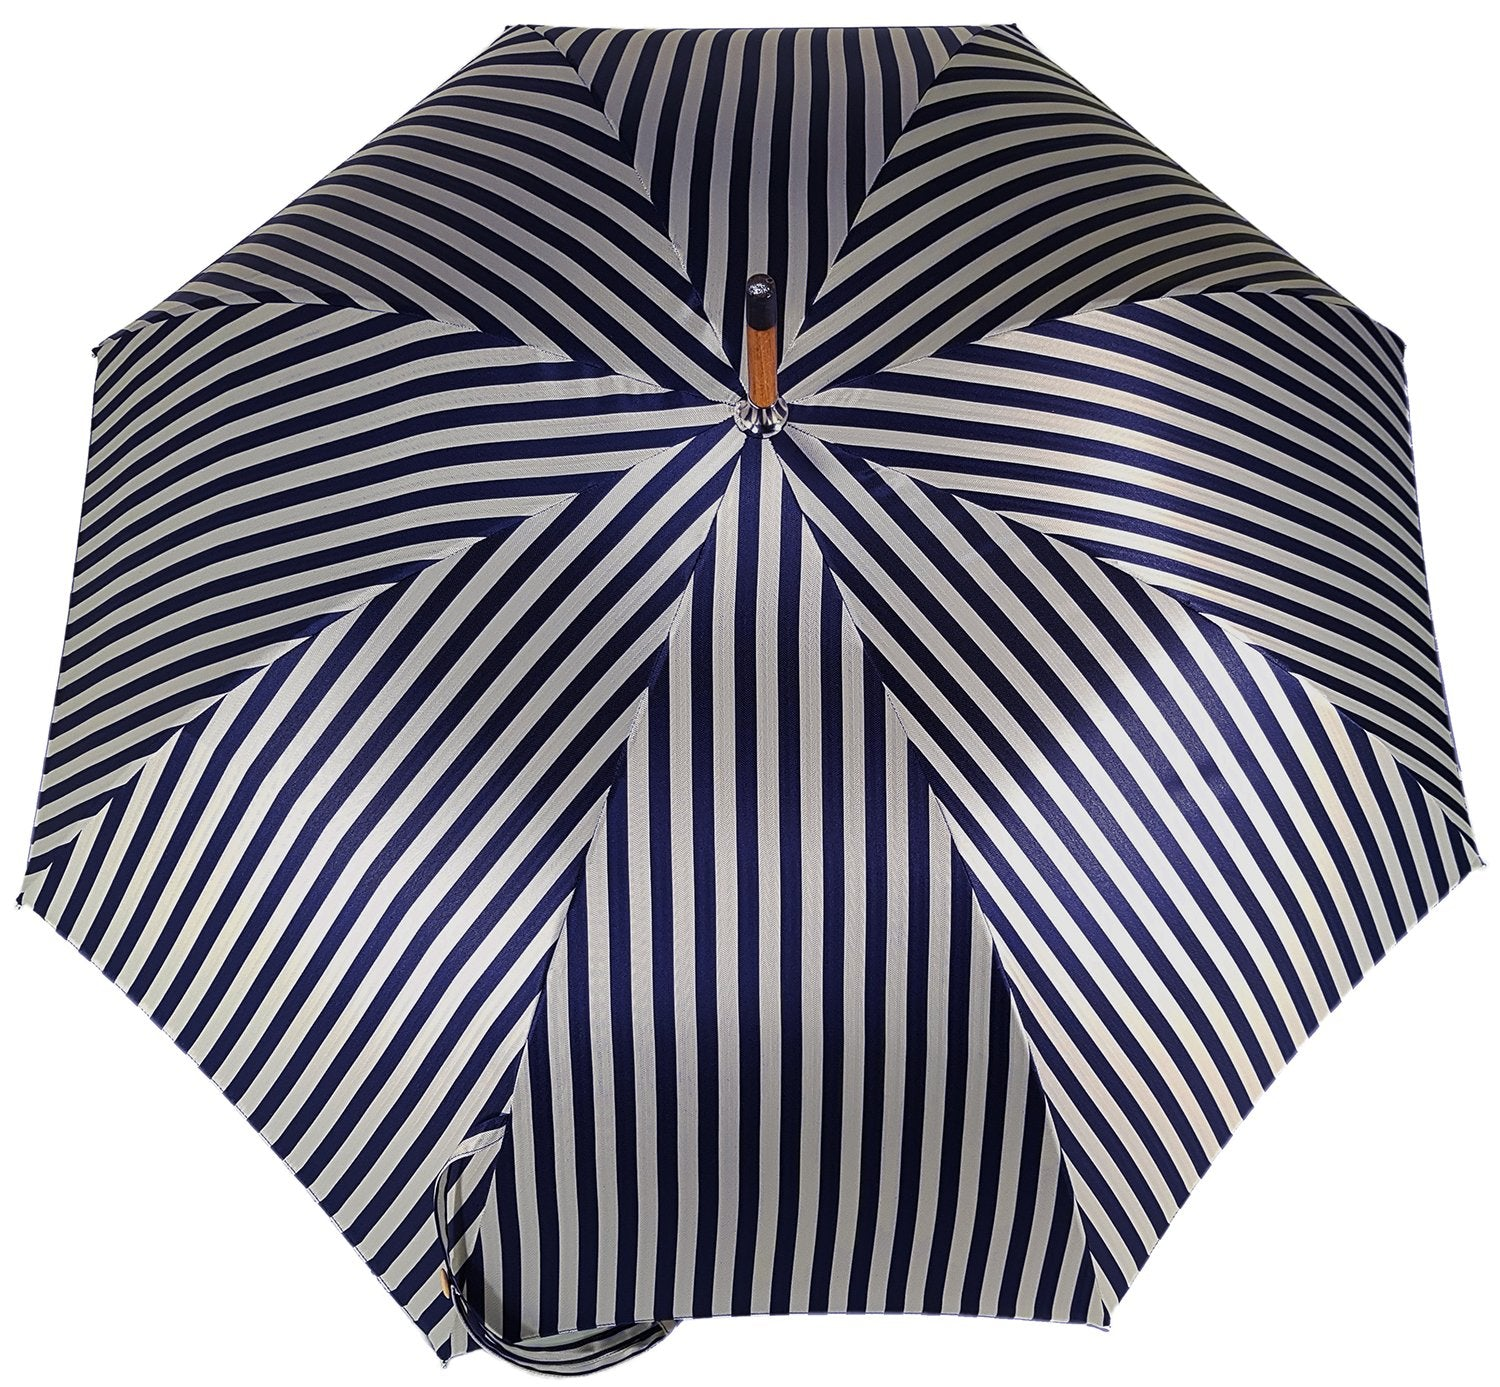 Raddoppia Cloth Men's Umbrella - Blue Stripped Design - il-marchesato